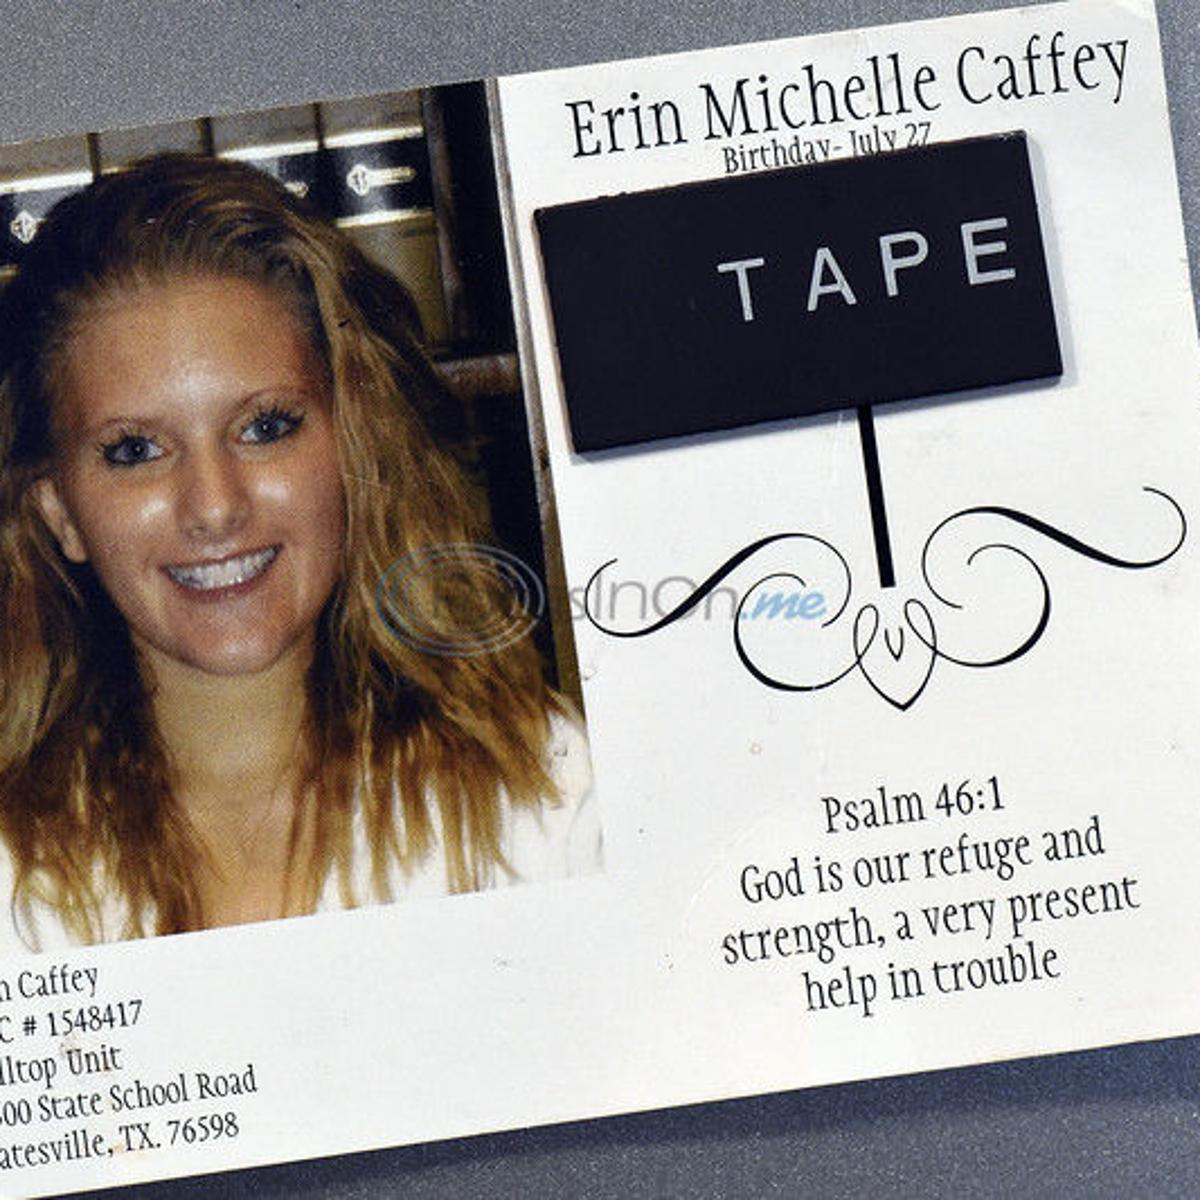 Emory Murders The Healing Journey Local News Tylerpaper Com Her family began homeschooling her when she was 13 after her family moved from. emory murders the healing journey